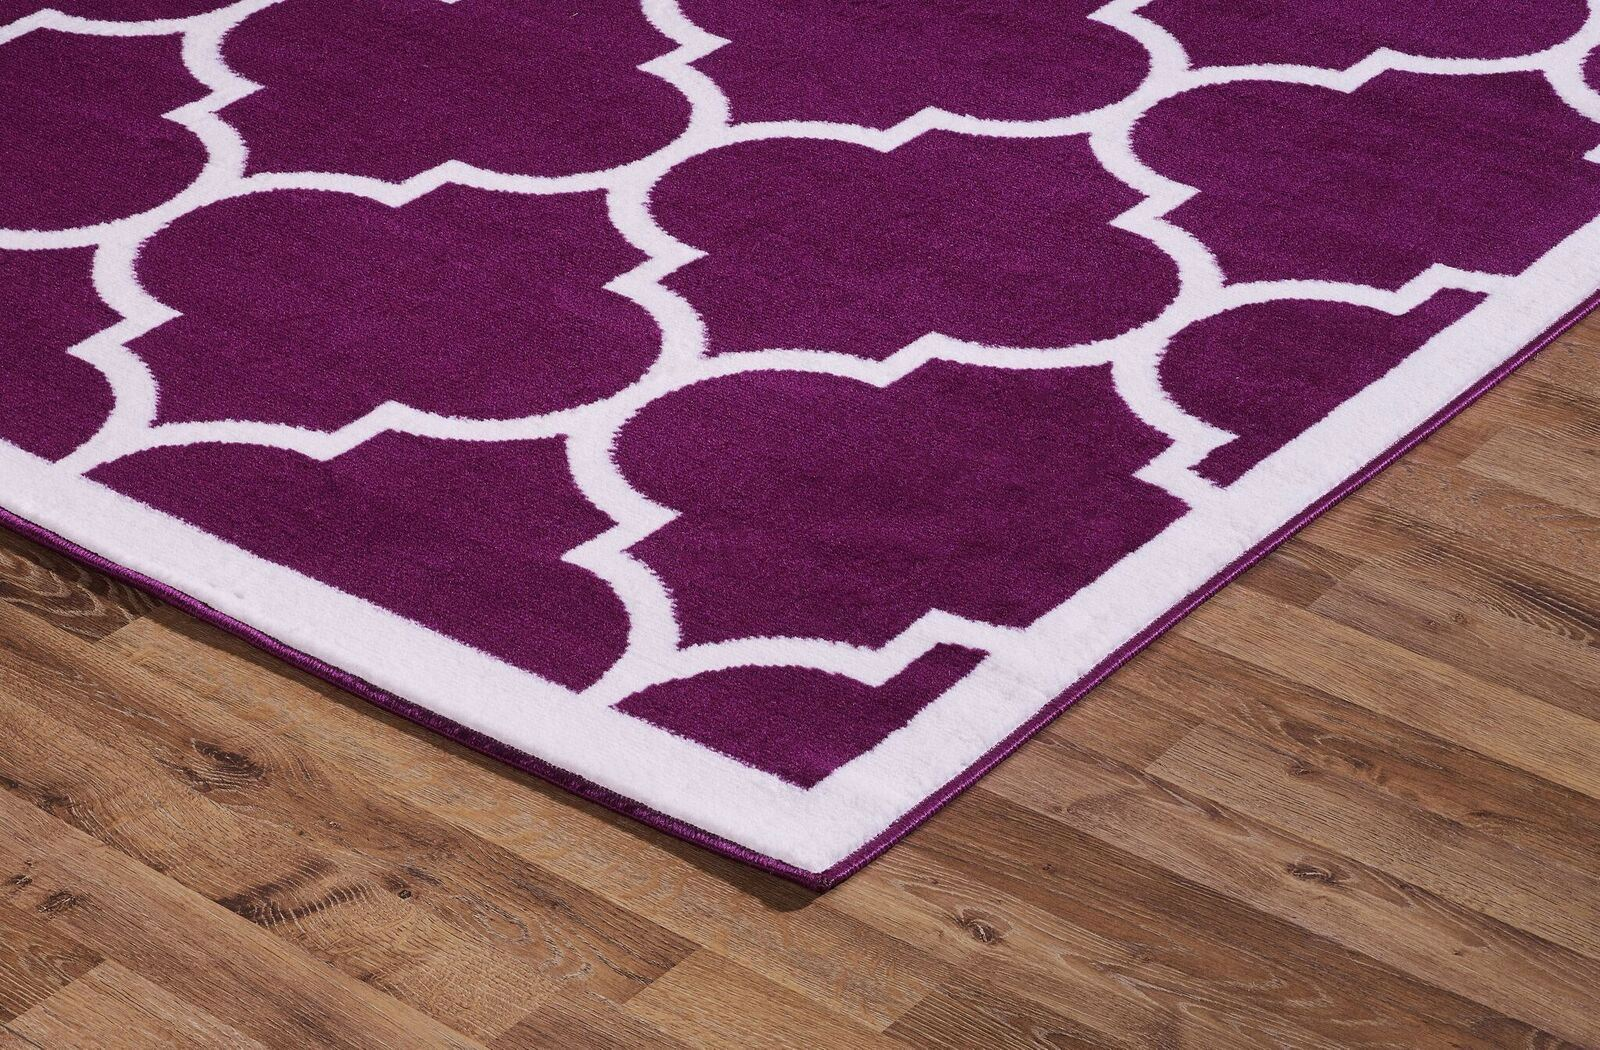 Medium Large Purple Soft Floor Mat Carpets White Moroccan